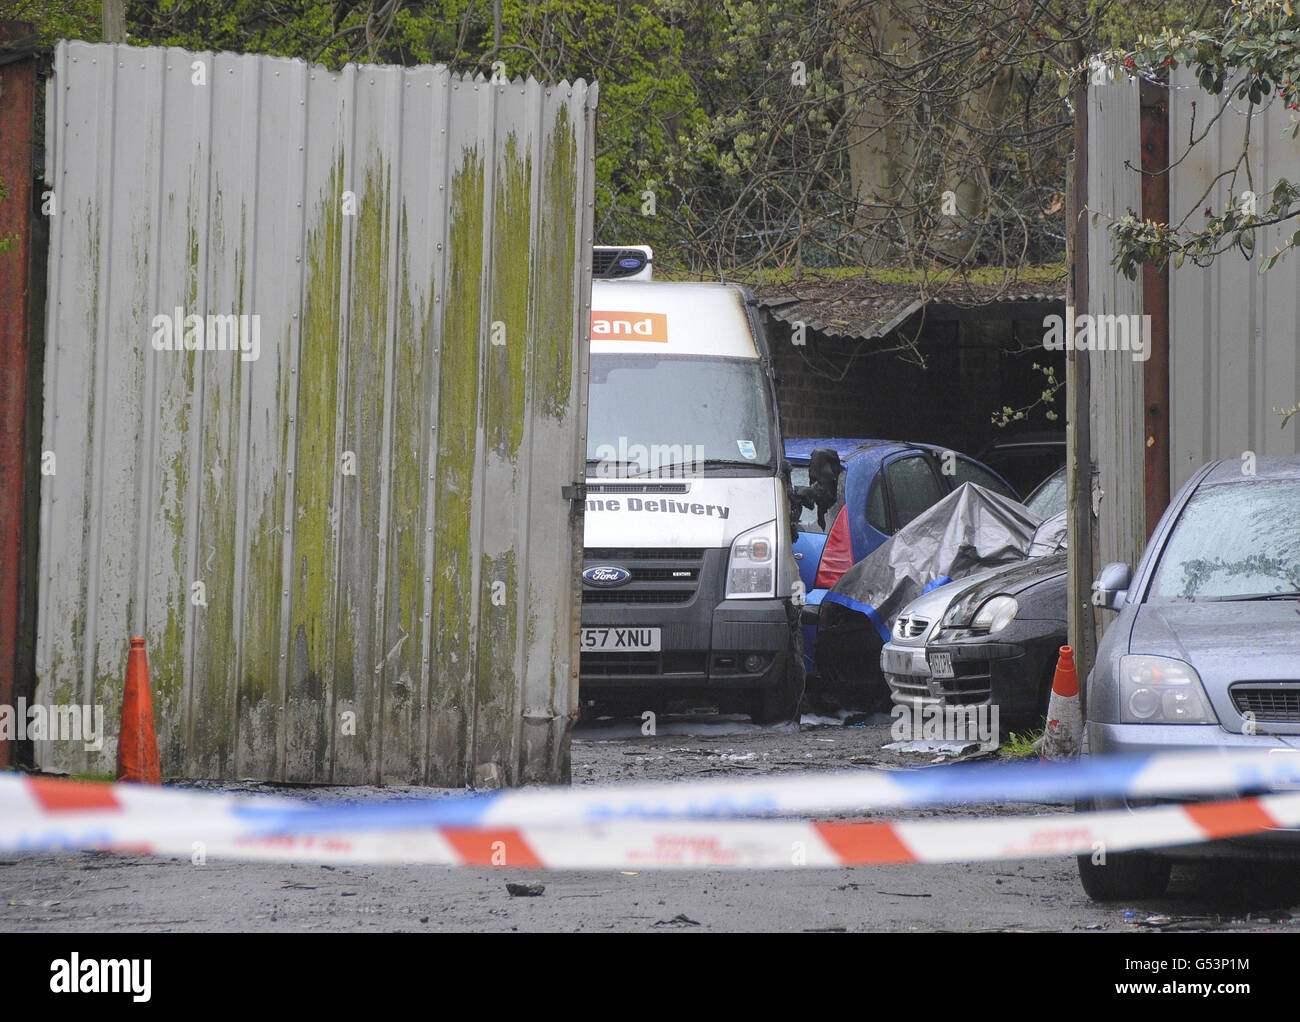 The scene at a salvage yard on Gravelly Lane, Erdington, Birmingham, after a body was discovered inside a car by Stock Photo